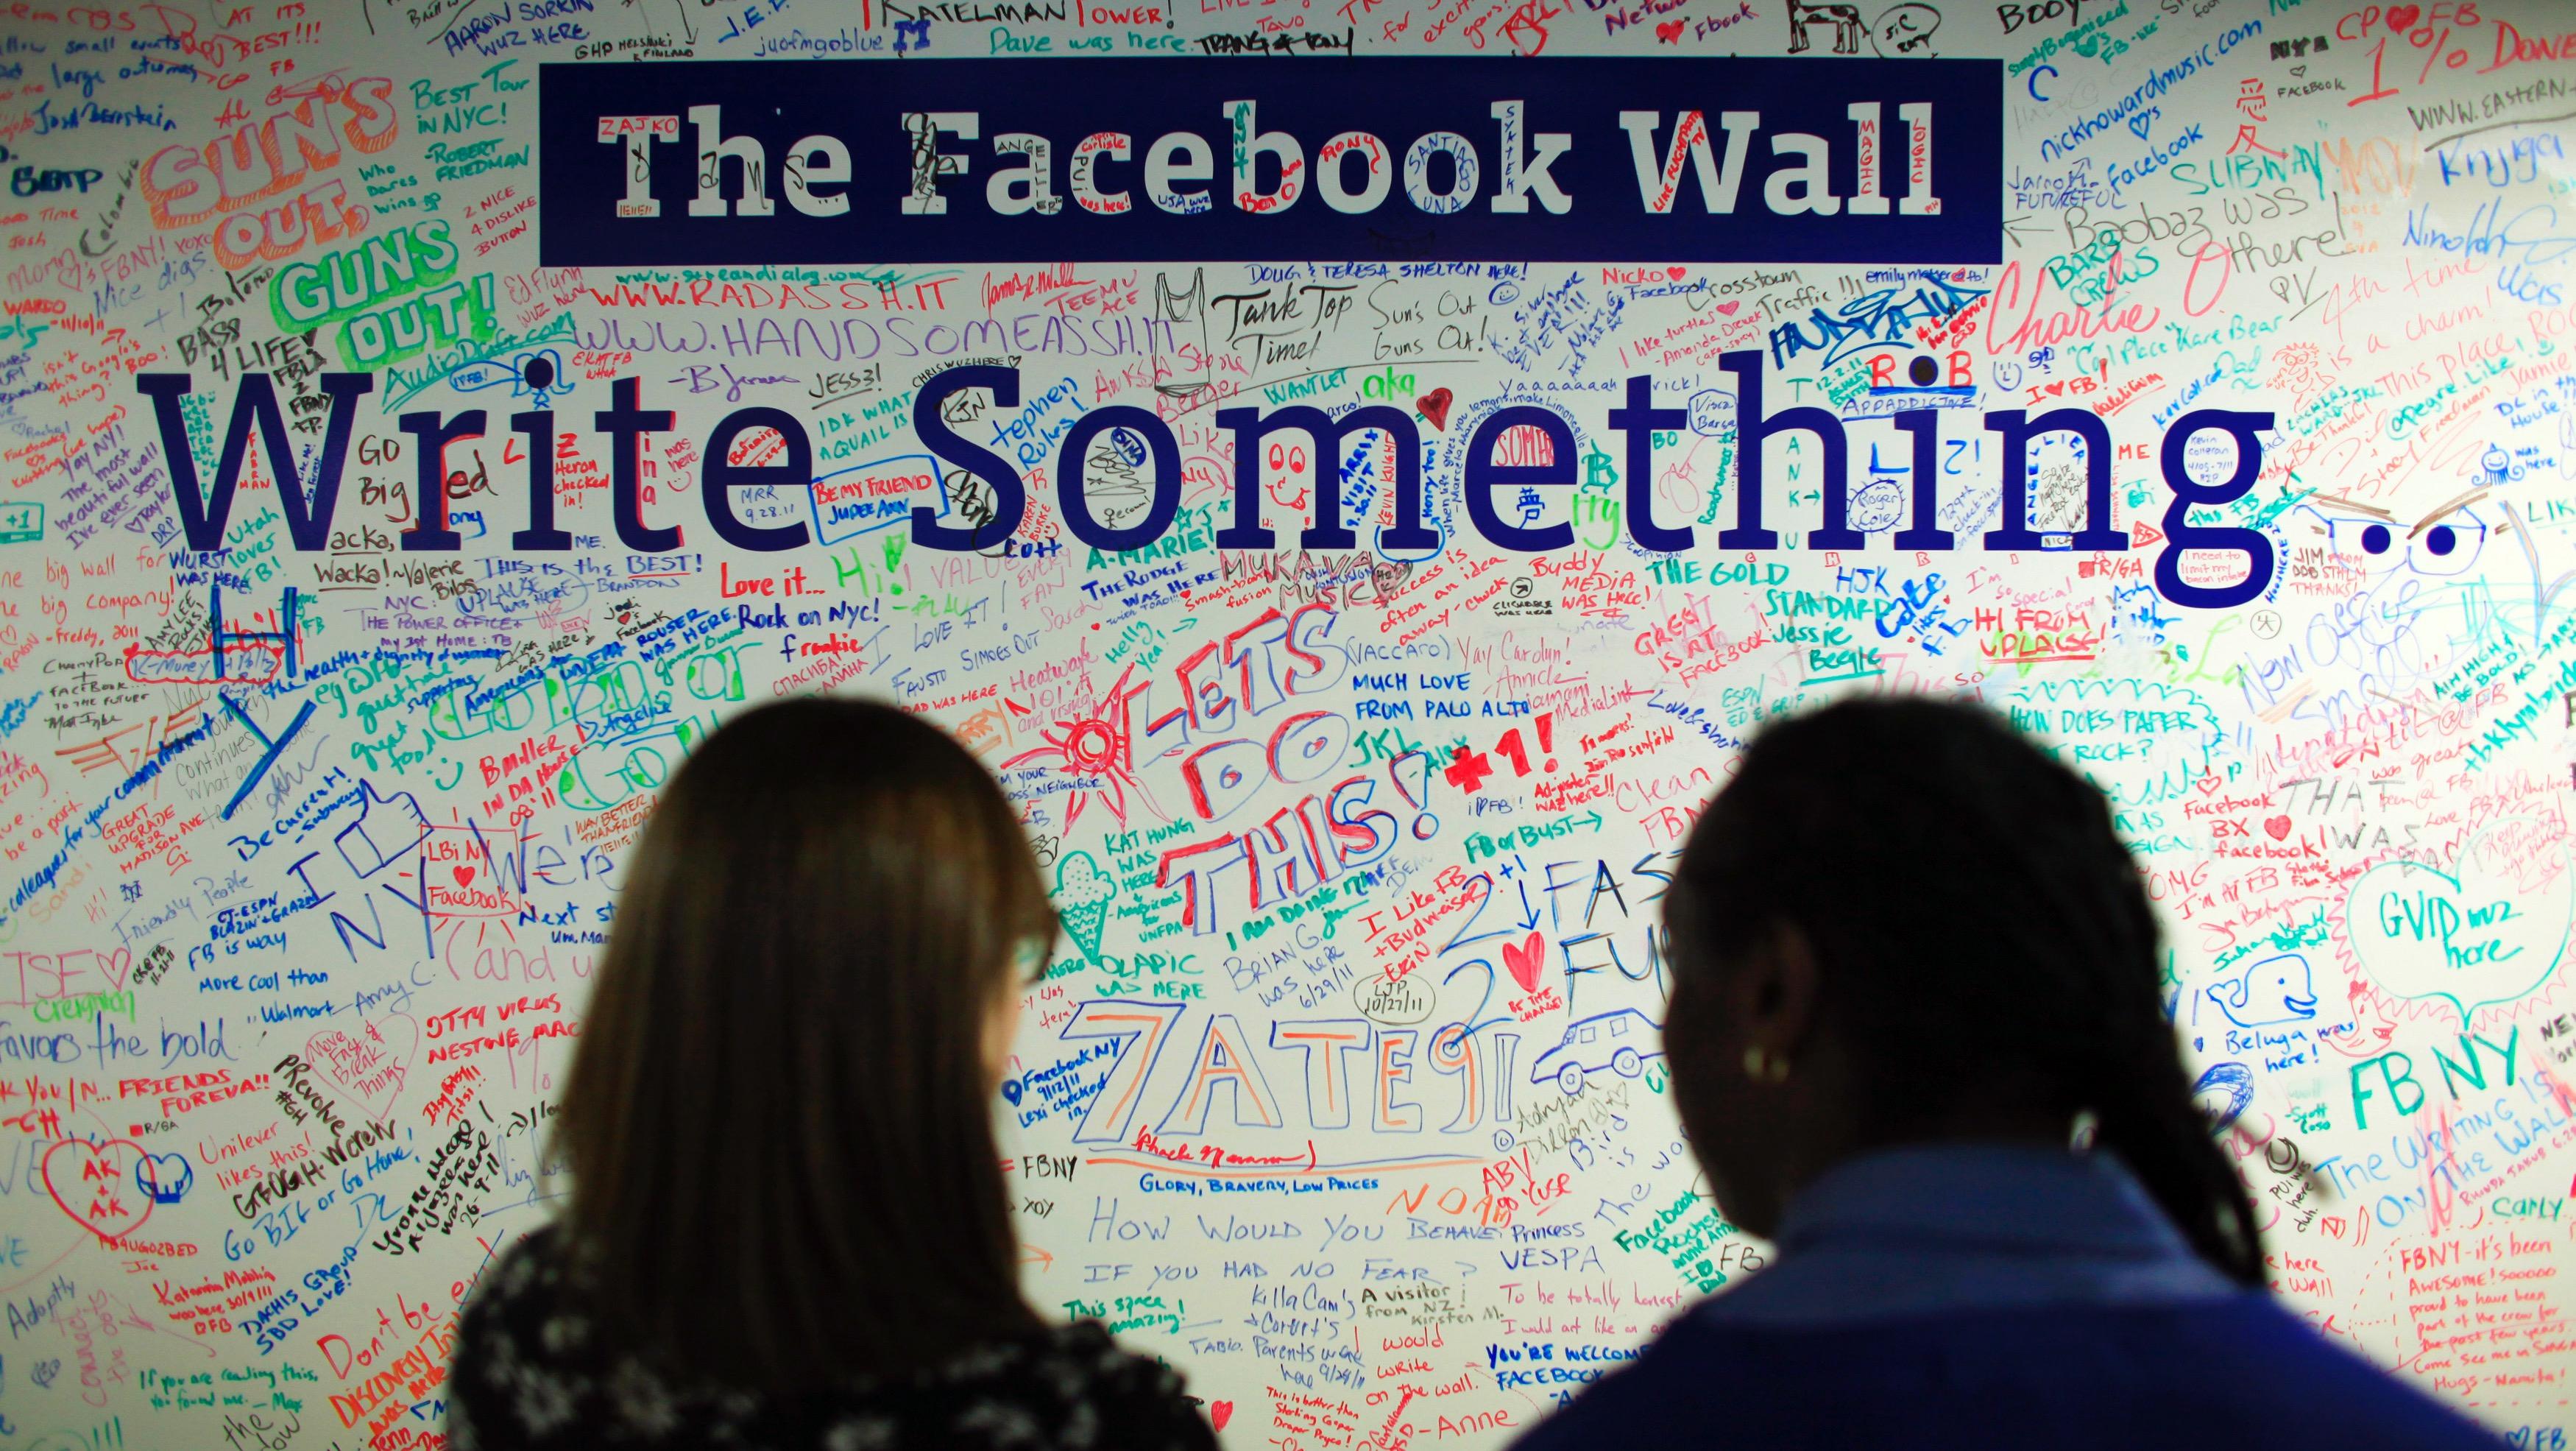 People look at the Facebook wall at their office in New York December 2, 2011.  REUTERS/Eduardo Munoz (UNITED STATES - Tags: BUSINESS) - RTR2URLD